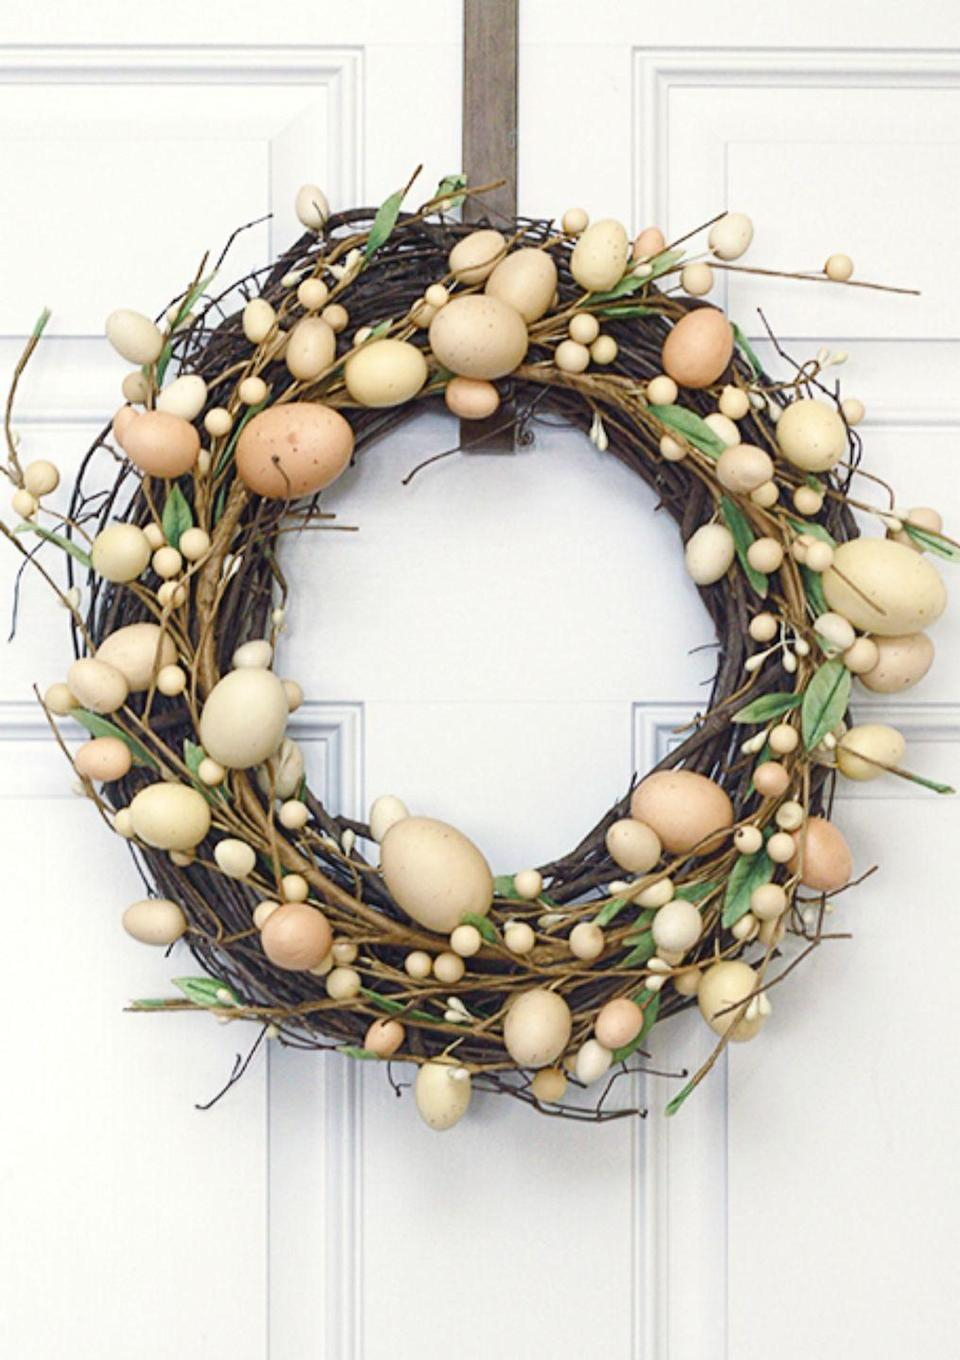 """<p>If you're not that into pastels, this neutral-colored wreath may be more up your alley. Plus, you'll only need two items to make it! </p><p><strong>Get the tutorial at <a href=""""https://livelaughrowe.com/diy-easter-wreath/"""" rel=""""nofollow noopener"""" target=""""_blank"""" data-ylk=""""slk:Live Laugh Rowe"""" class=""""link rapid-noclick-resp"""">Live Laugh Rowe</a>. </strong></p><p><strong><strong><a class=""""link rapid-noclick-resp"""" href=""""https://www.amazon.com/Bulk-Buy-Darice-Grapevine-Wreath/dp/B0033M0HG4?tag=syn-yahoo-20&ascsubtag=%5Bartid%7C10050.g.4088%5Bsrc%7Cyahoo-us"""" rel=""""nofollow noopener"""" target=""""_blank"""" data-ylk=""""slk:SHOP GRAPEVINE WREATHS"""">SHOP GRAPEVINE WREATHS</a></strong><br></strong></p>"""